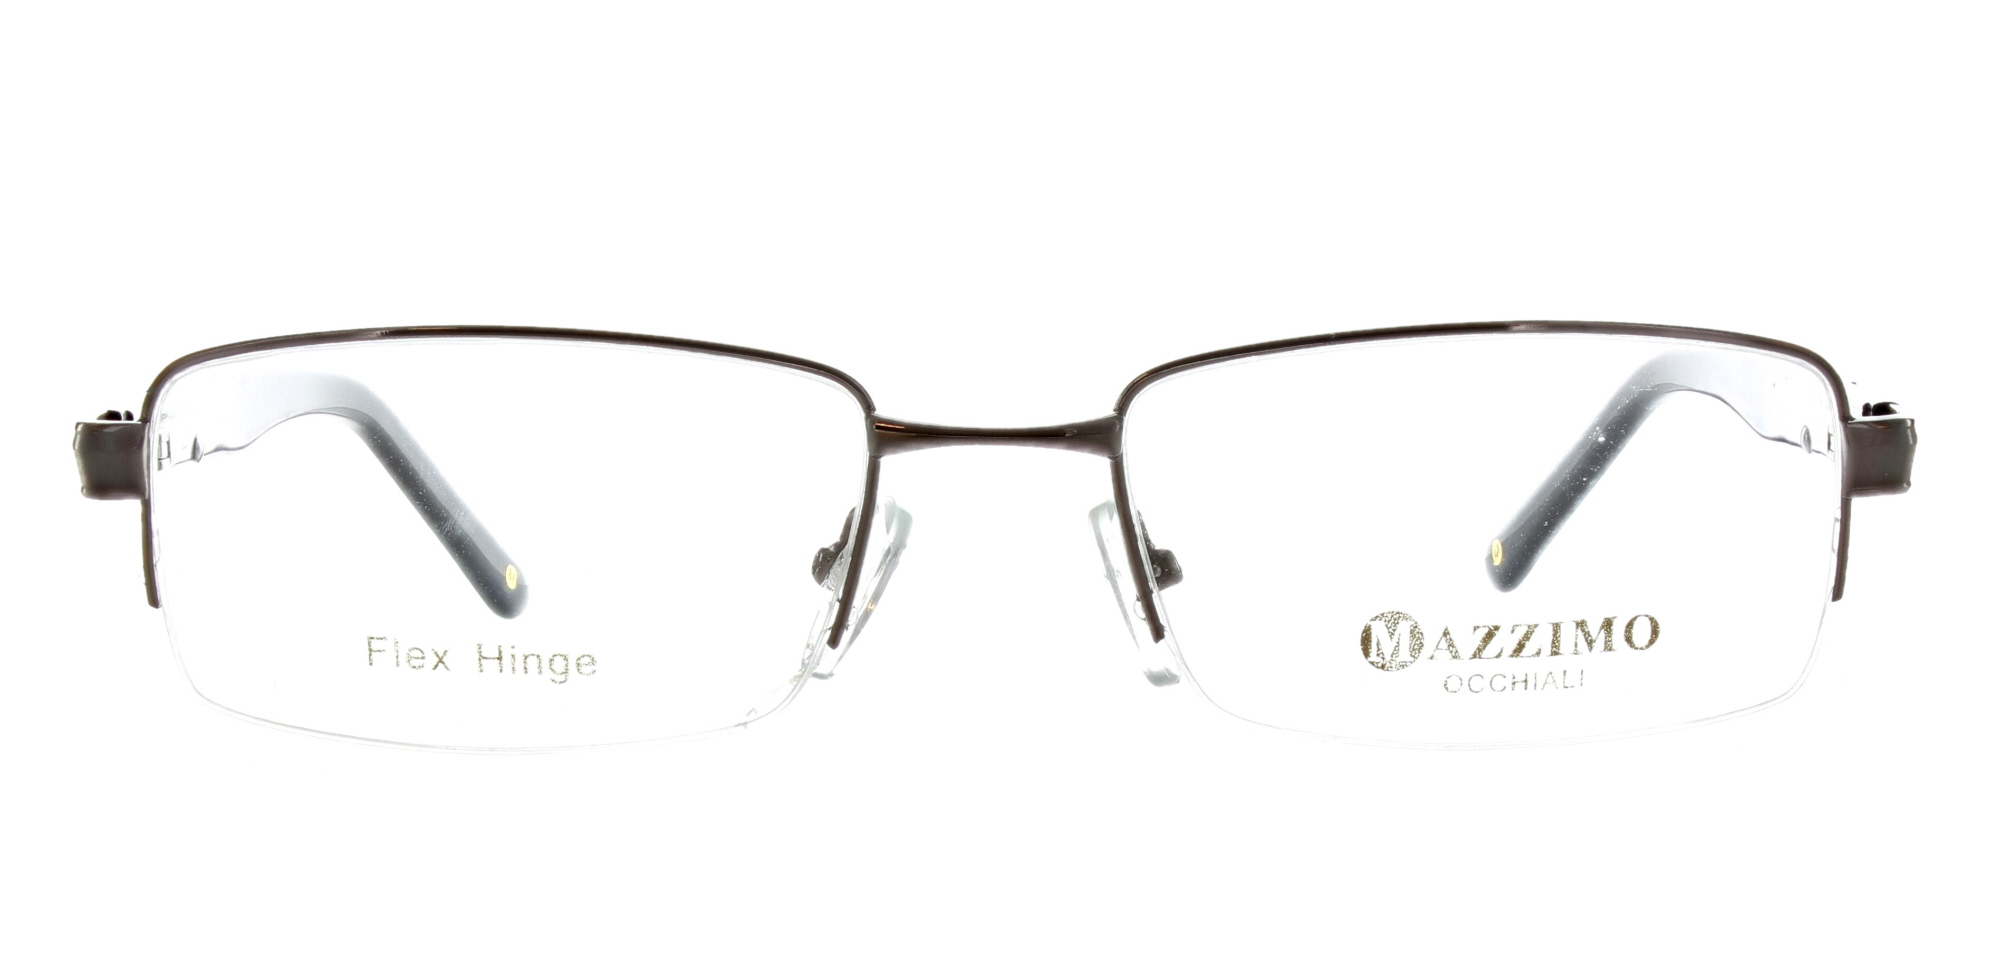 cc56f342c30b MAZZIMO OCCHIALI 1115 Prescription Glasses